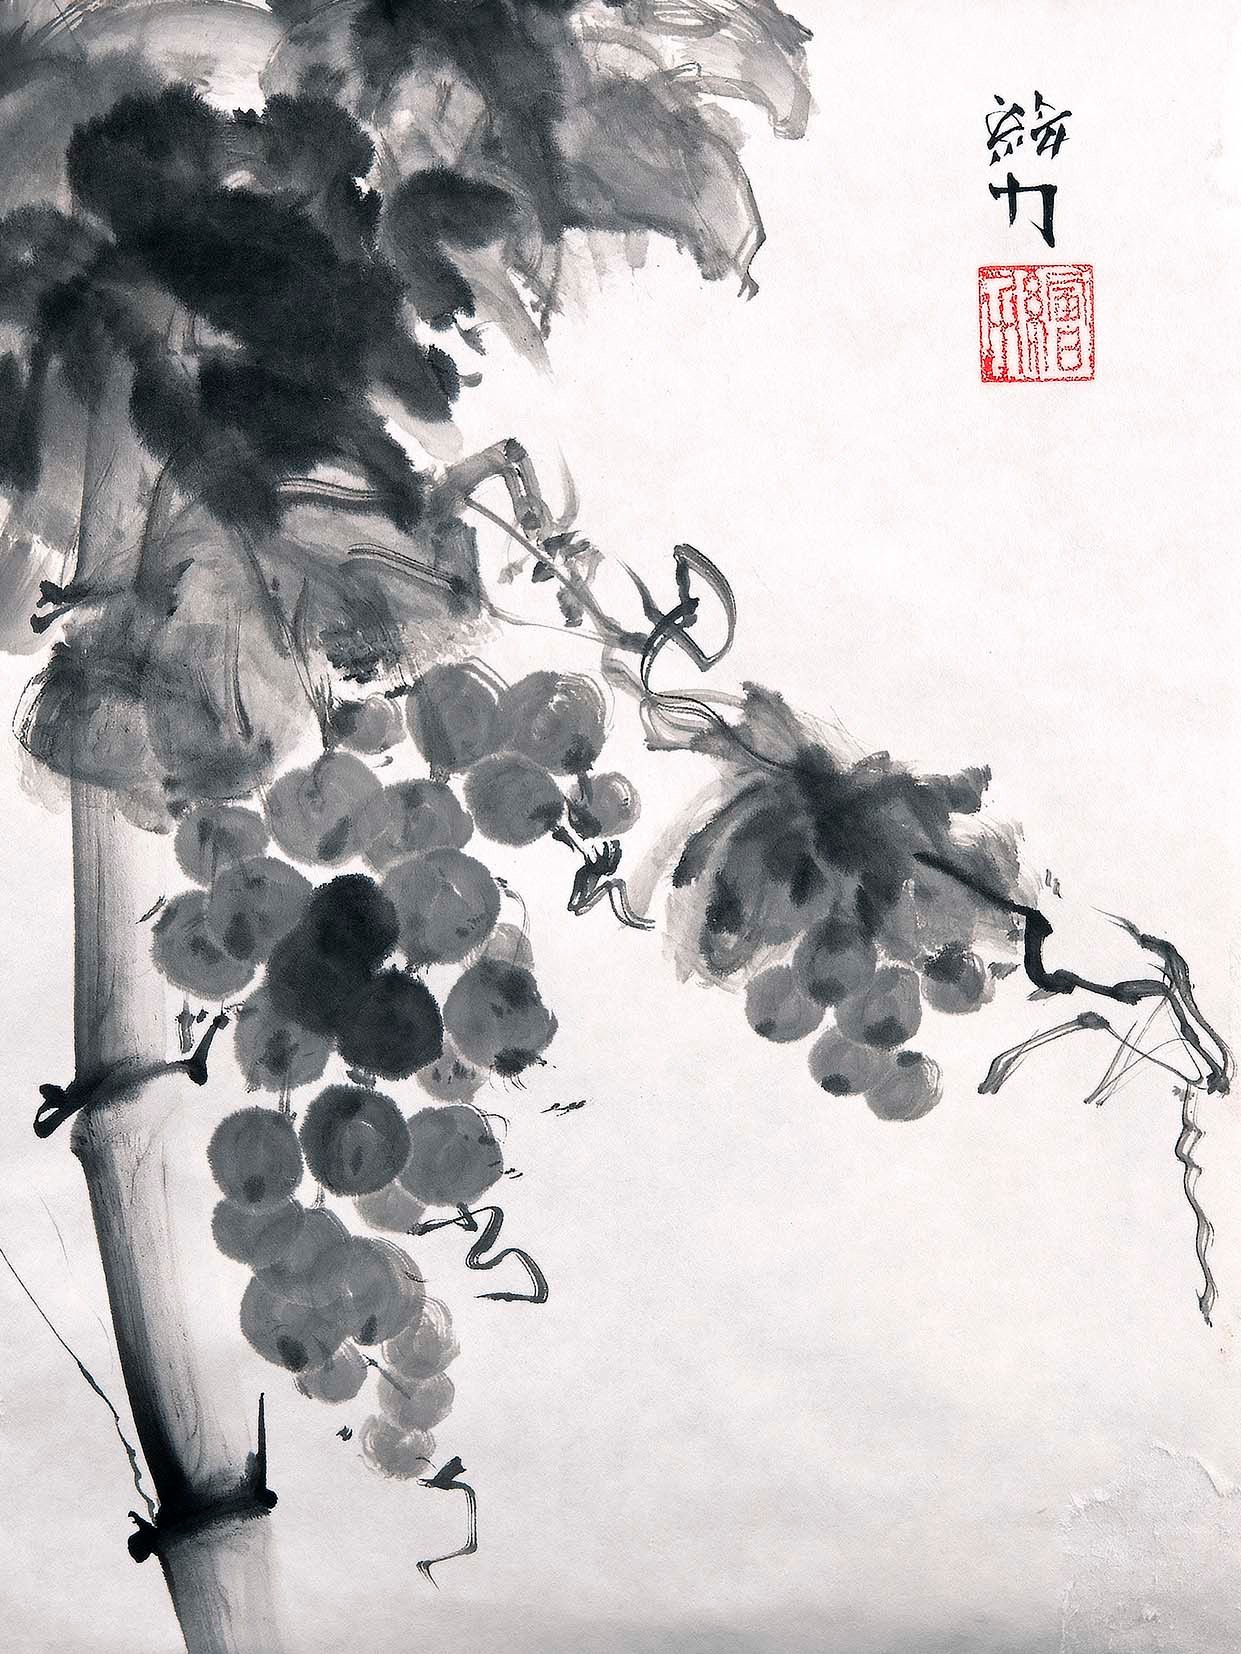 Hombretheartist sumie grapes 1 forwebsite poibvl